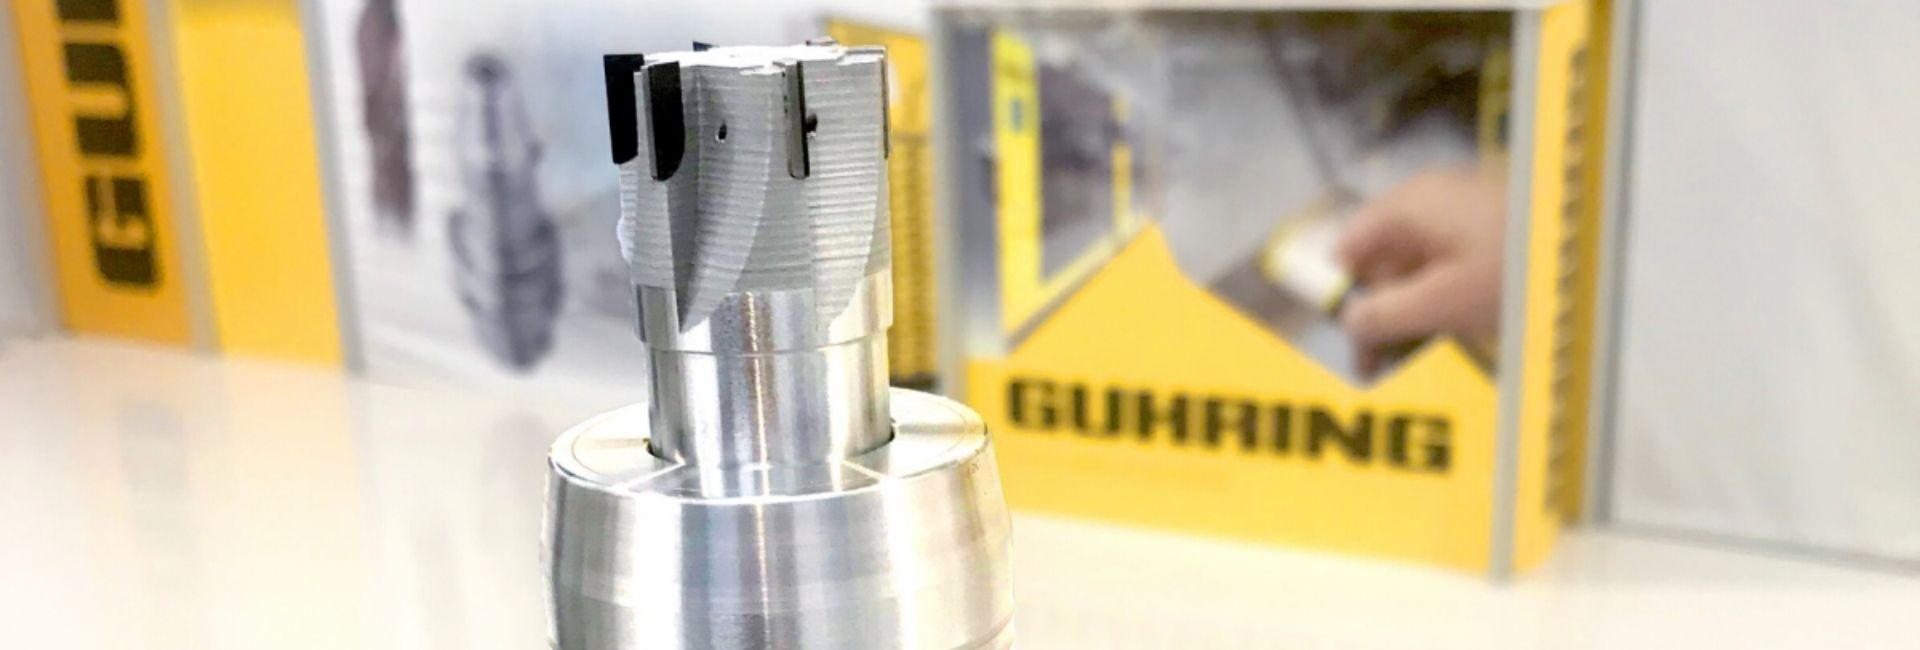 guhring-uk-openeing-new-revenue-streams-with-additive-manufacturing